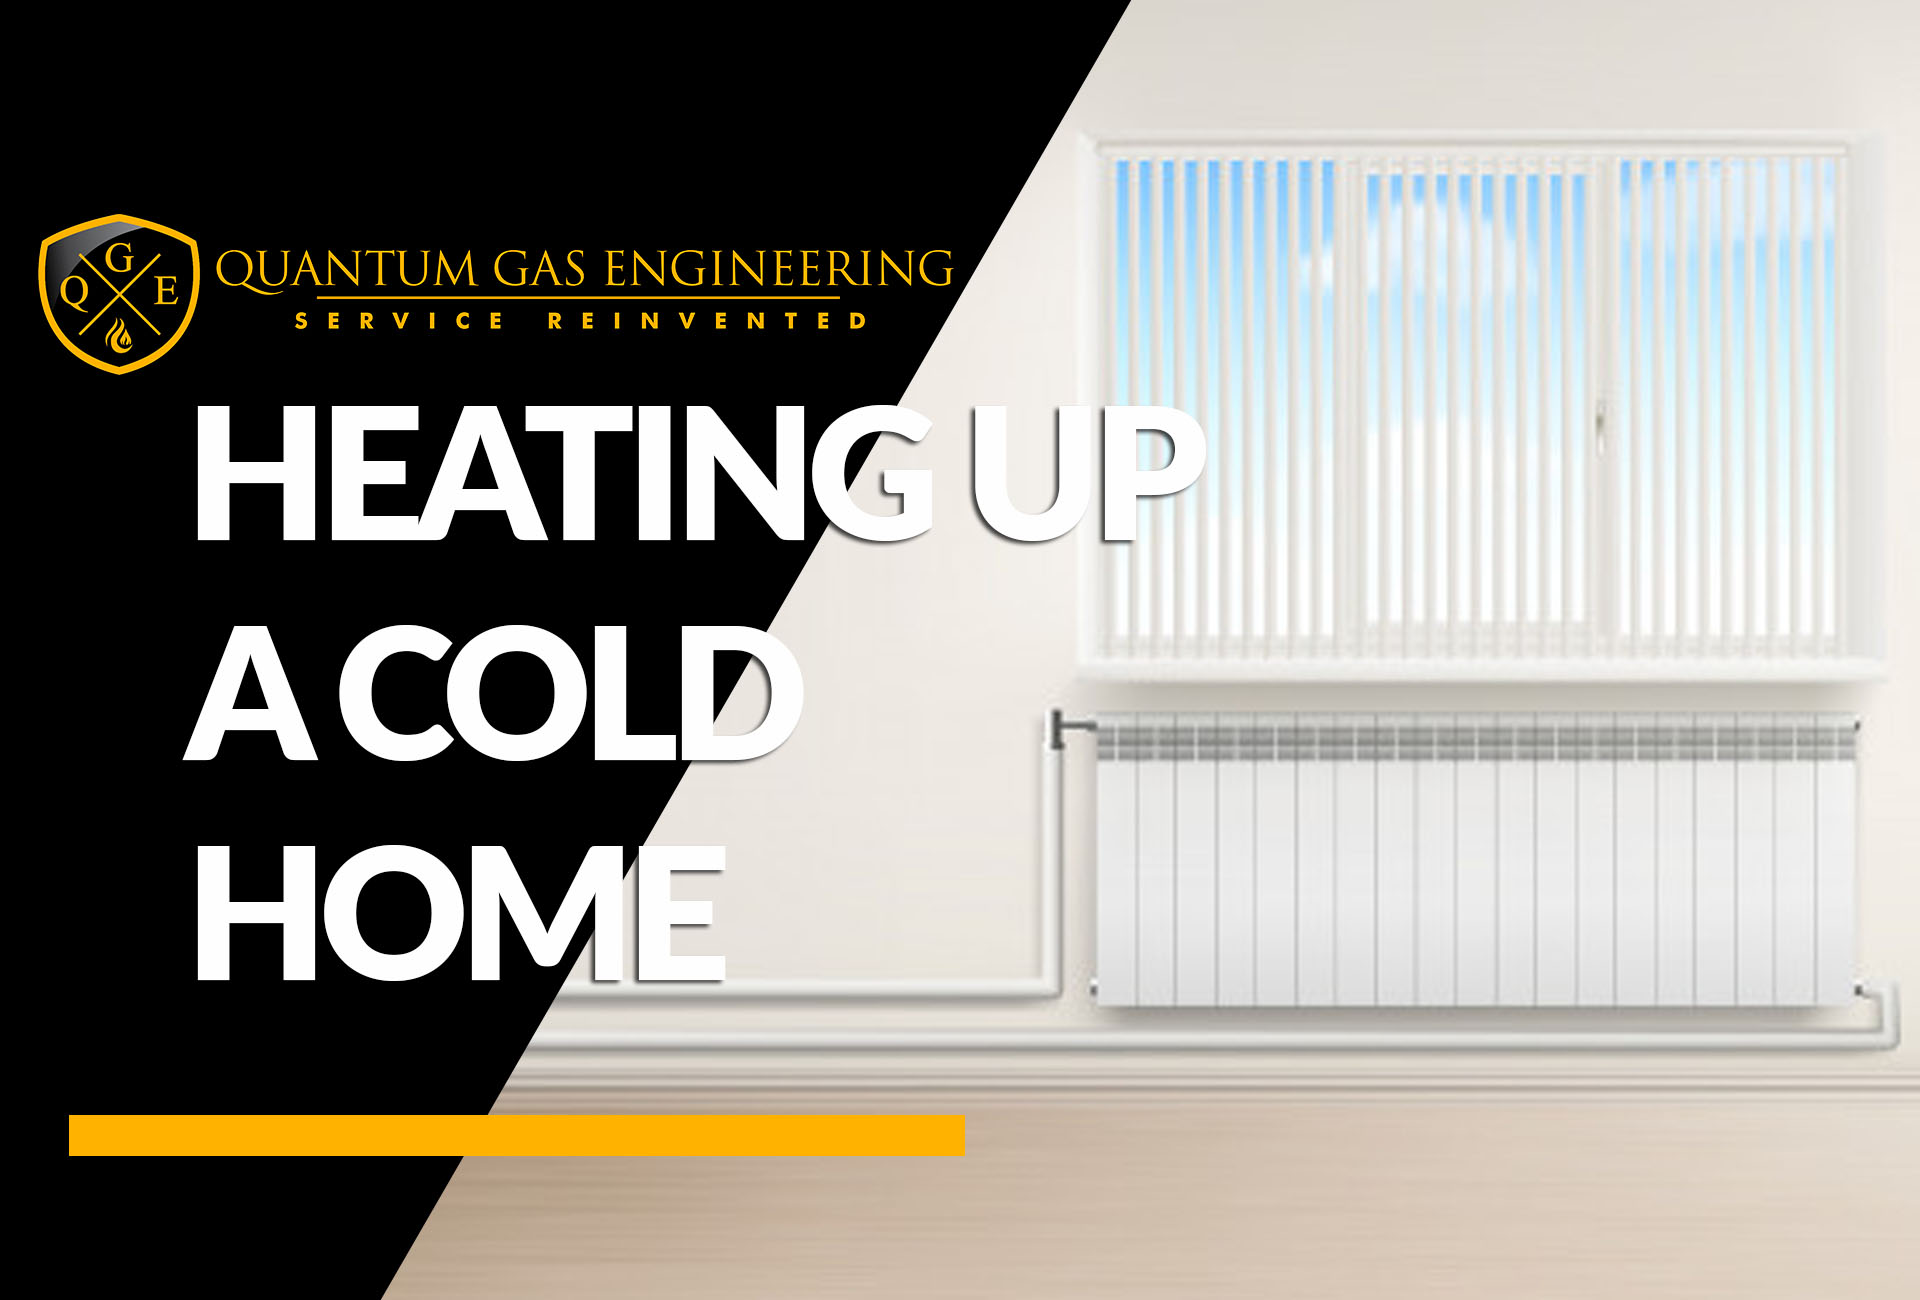 HEATING COLD HOME